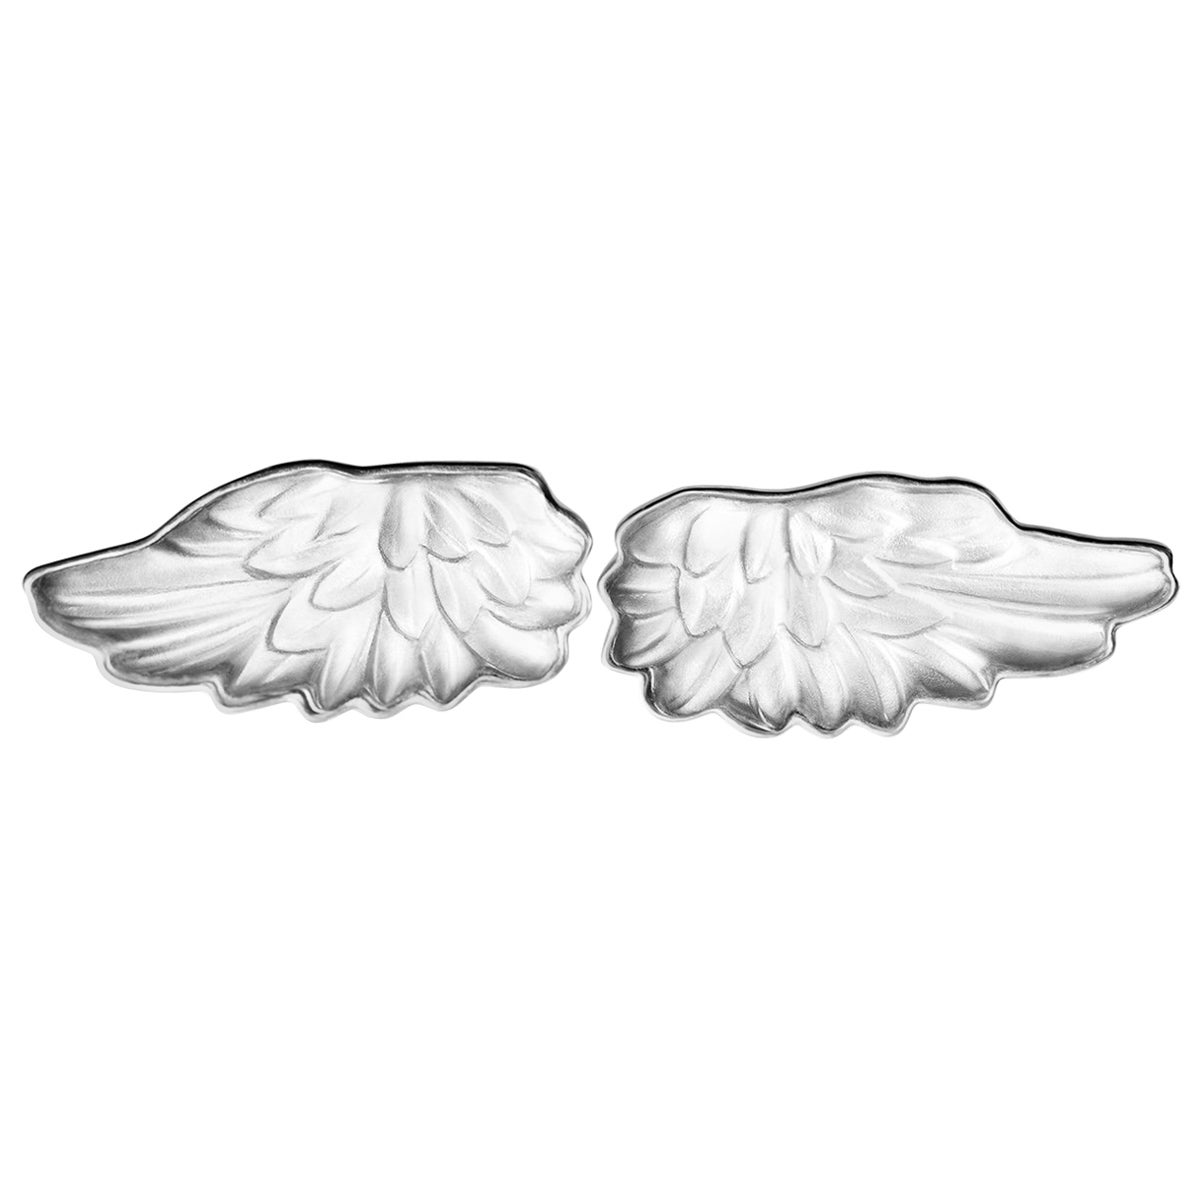 18 Karat White Gold Perseus Cufflinks Designed by the Artist with Rock Crystals